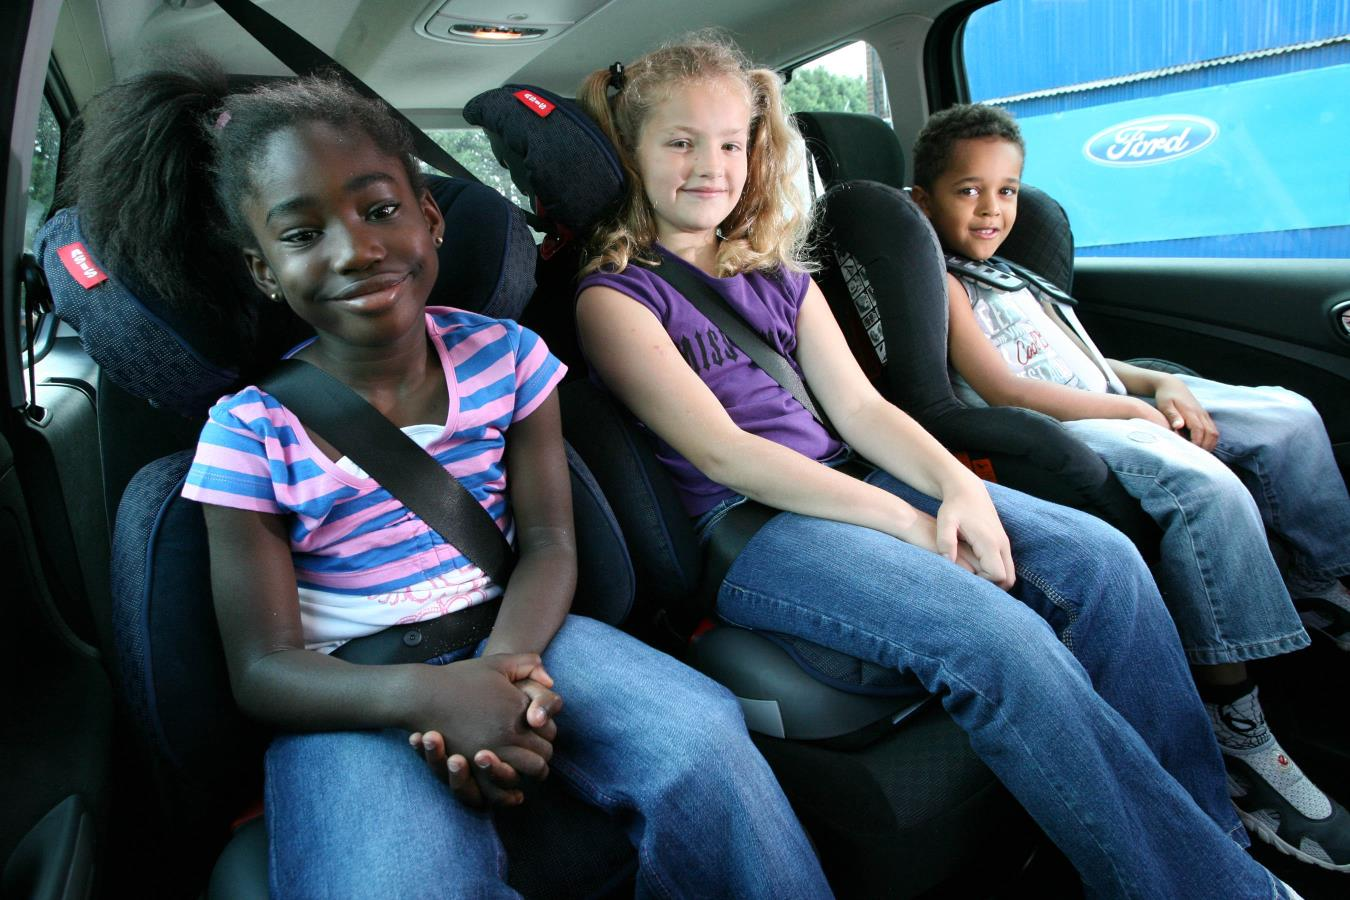 For children of three years and over, what are the seating regulations in a car?